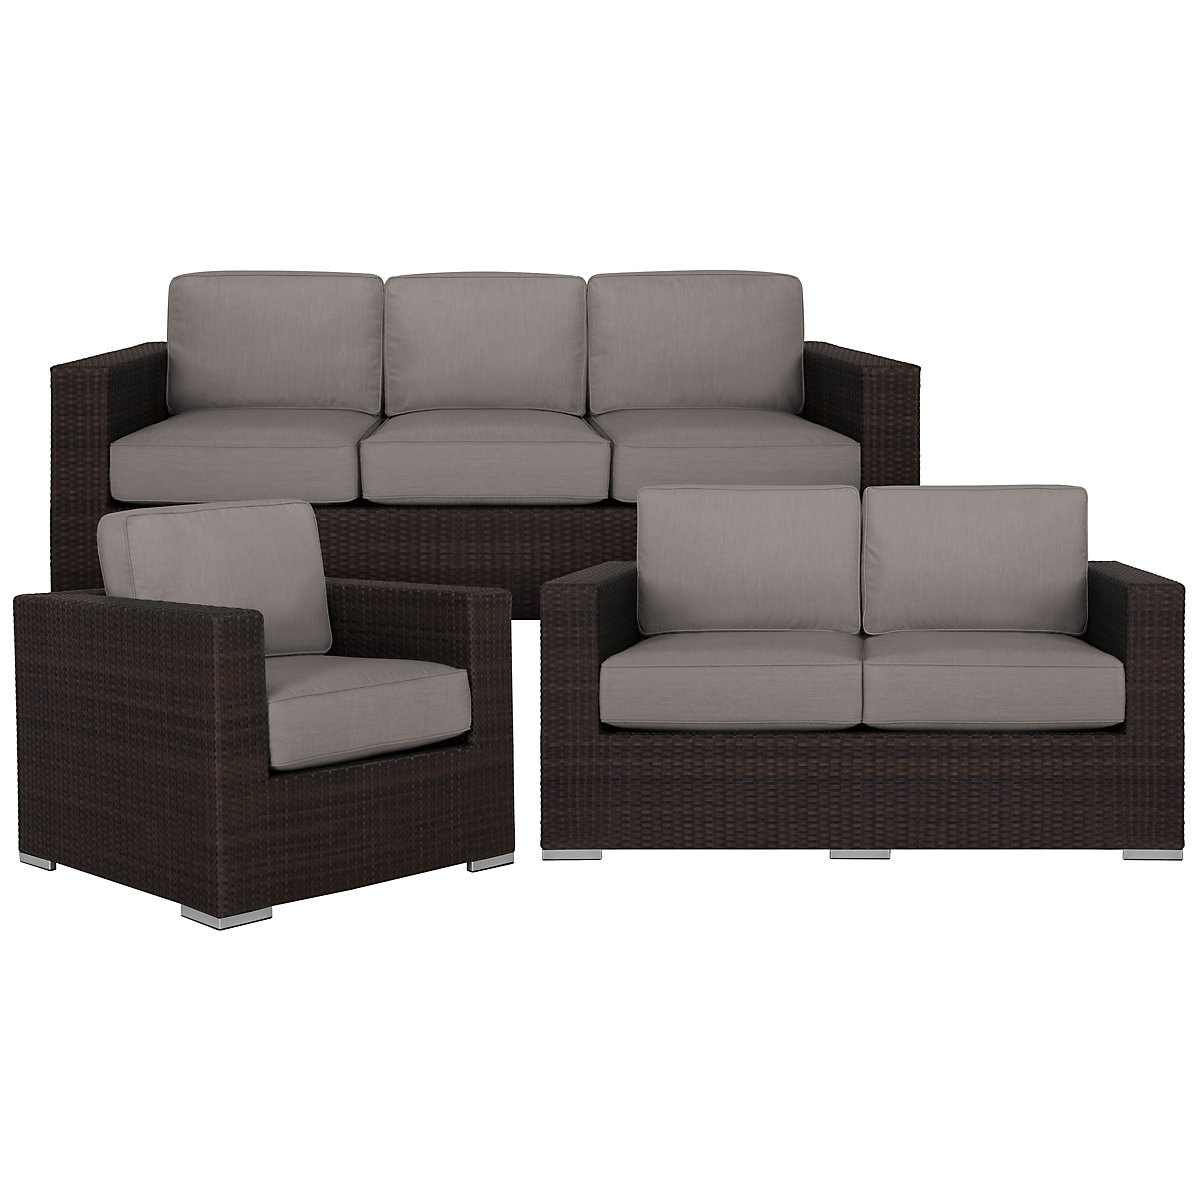 Fina Gray Outdoor Living Room Set